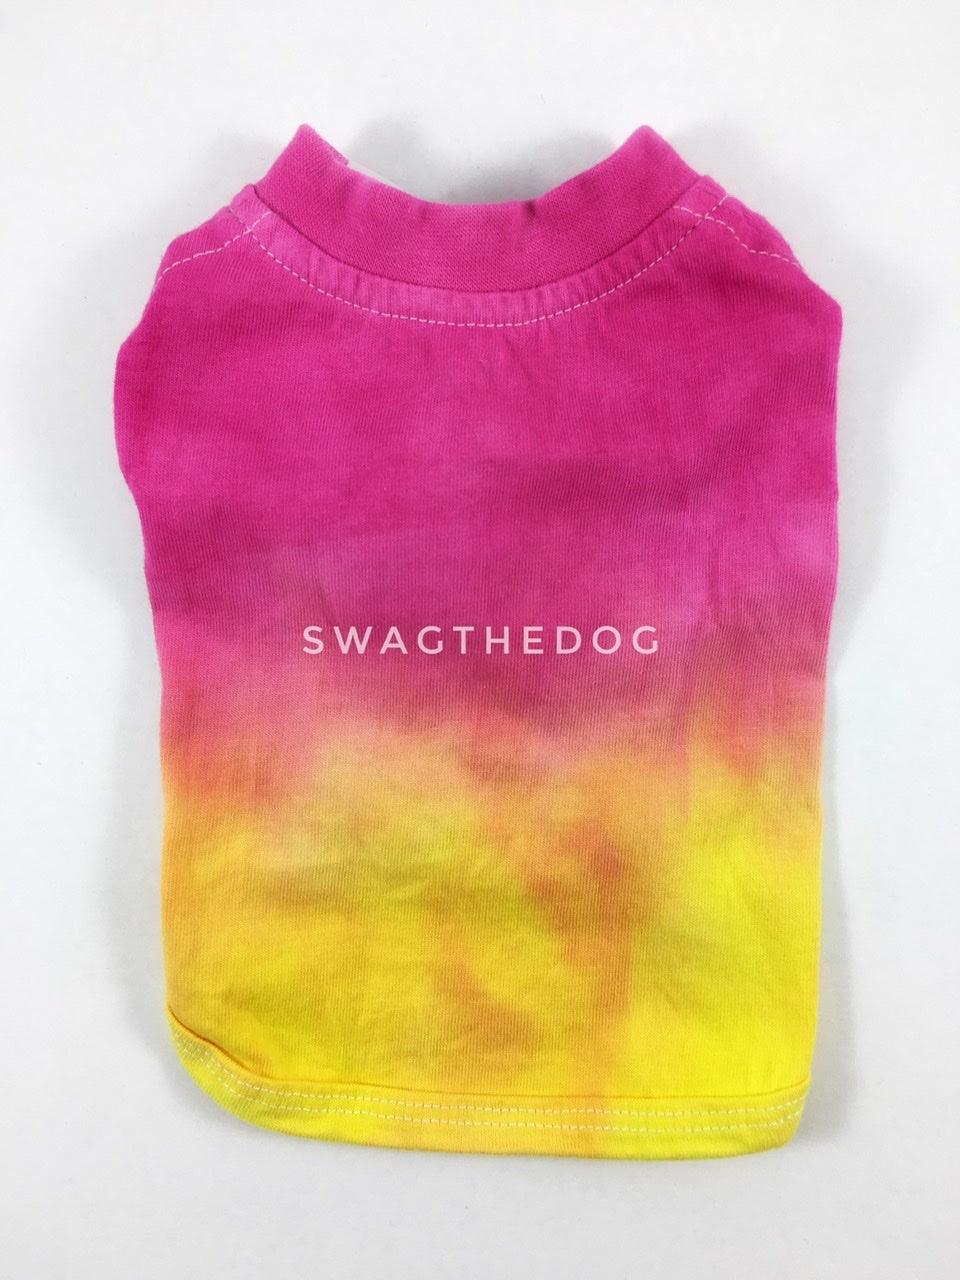 Swagadelic Summer Sunset Ombré Tie Dye Tee - Product back view. The hand tie-dyed tee with Pink and Yellow